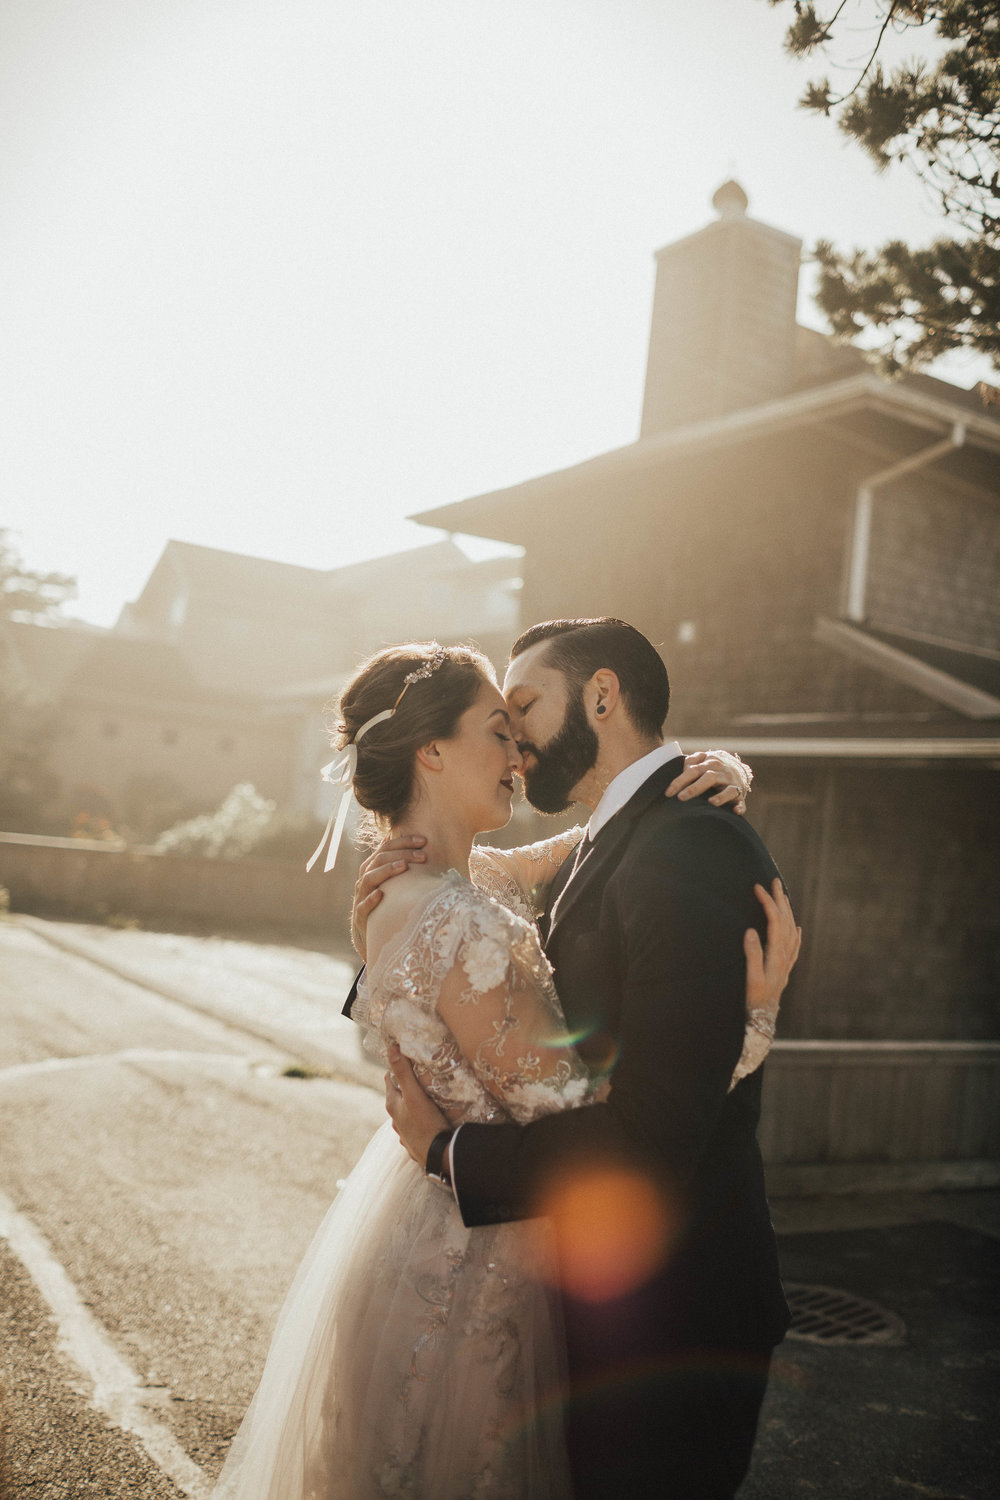 Cannon Beach Elopement - Michelle Larmand Photography - 006